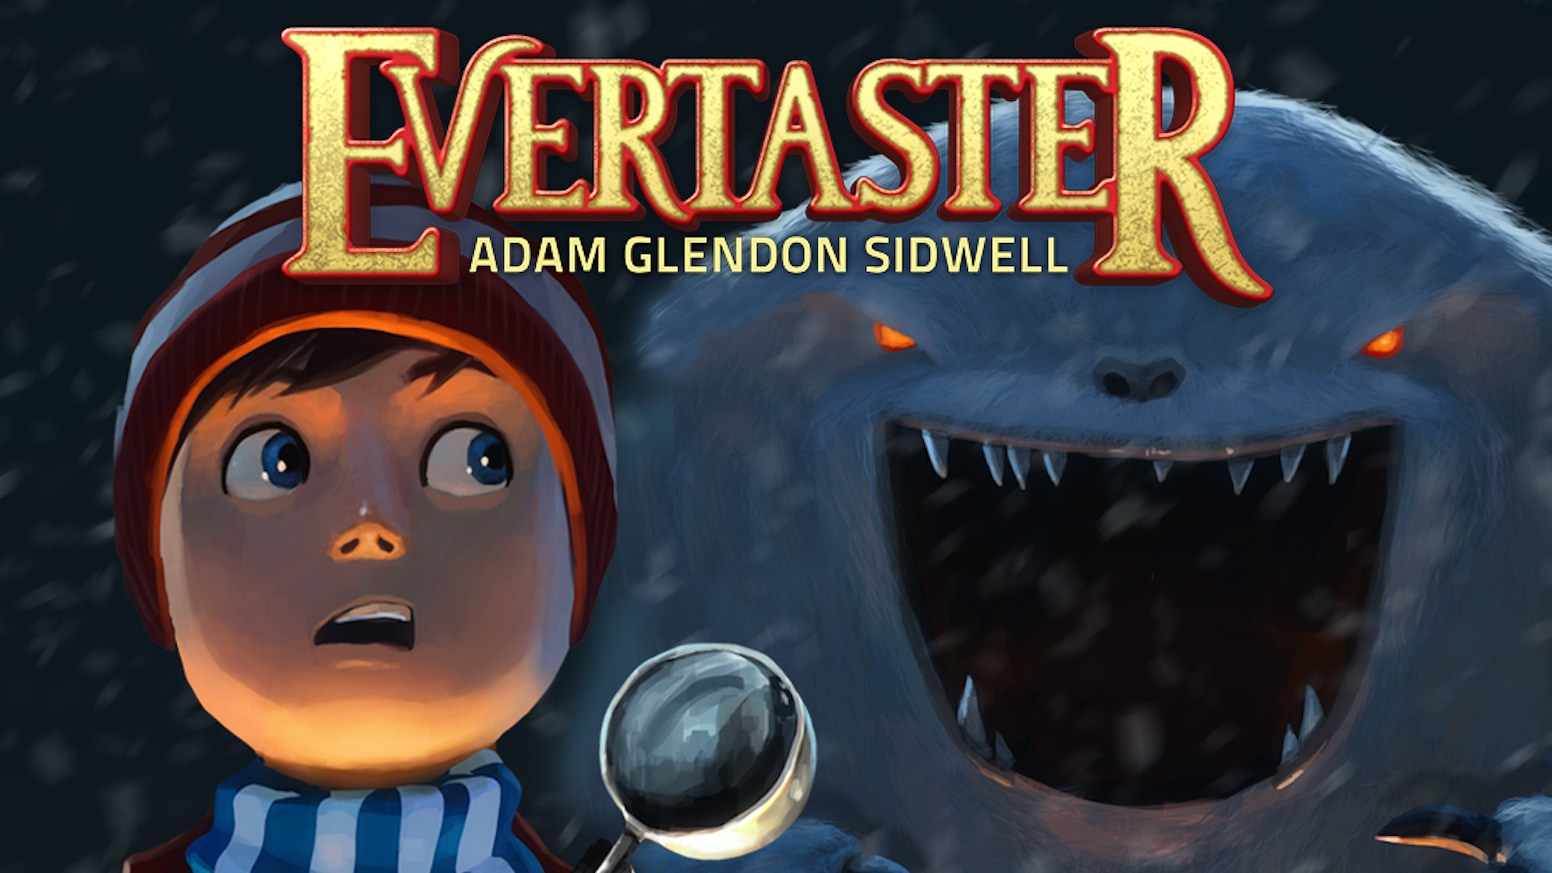 Help launch the long anticipated sequel to Evertaster! Get a copy of Evertaster: The Delicious City before everyone else.